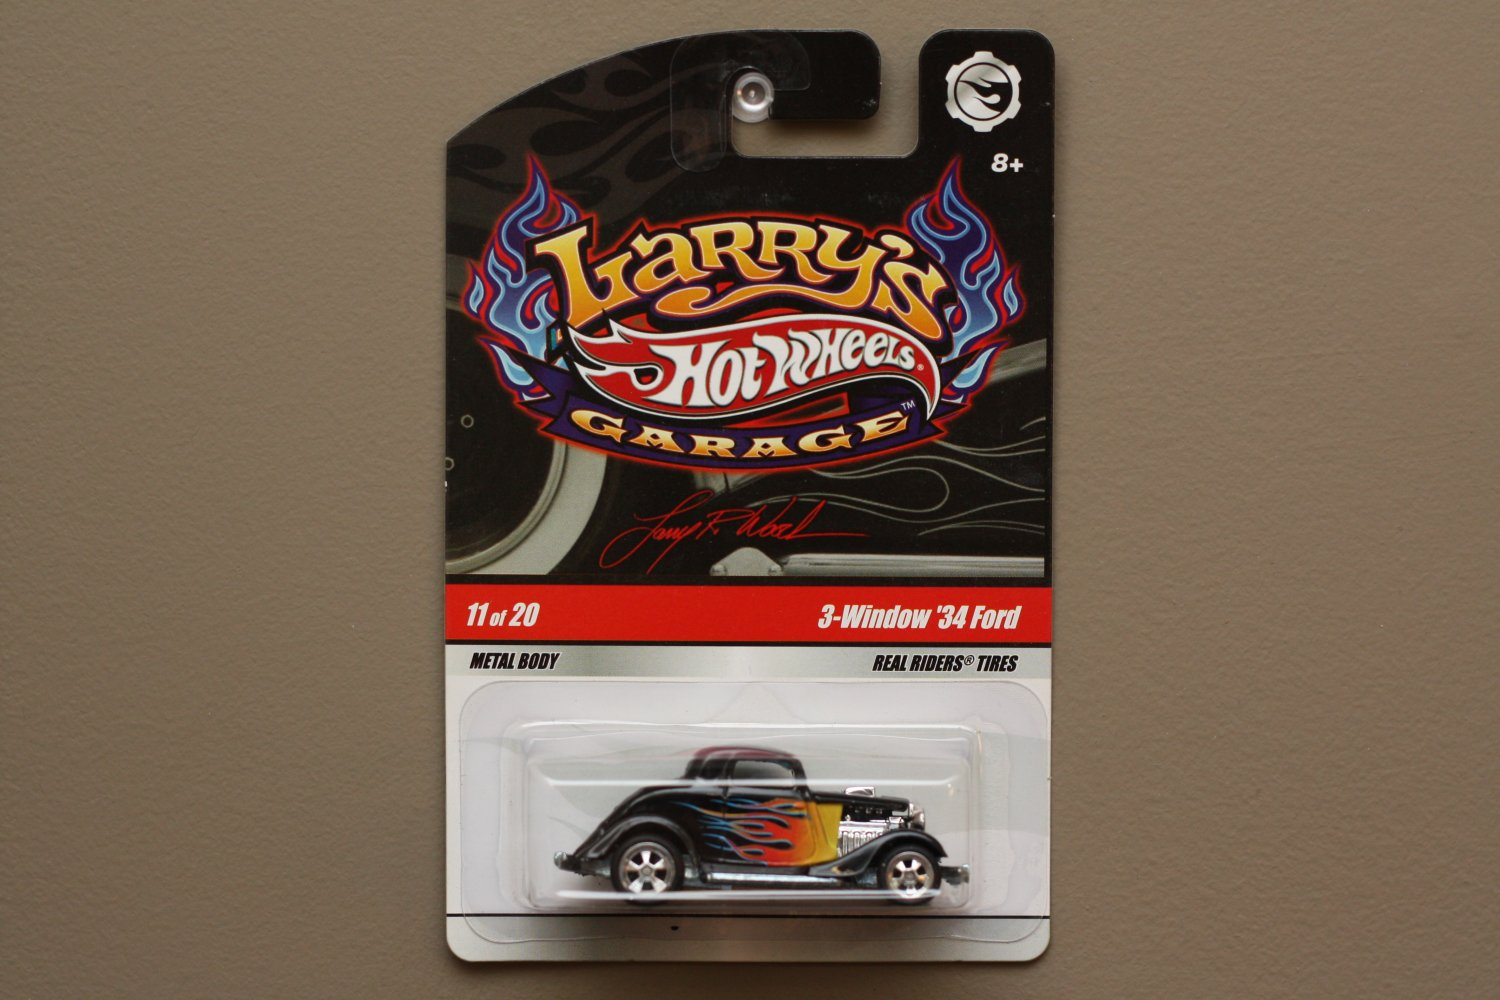 Hot Wheels 2009 Larry's Garage 3-Window '34 Ford (black)